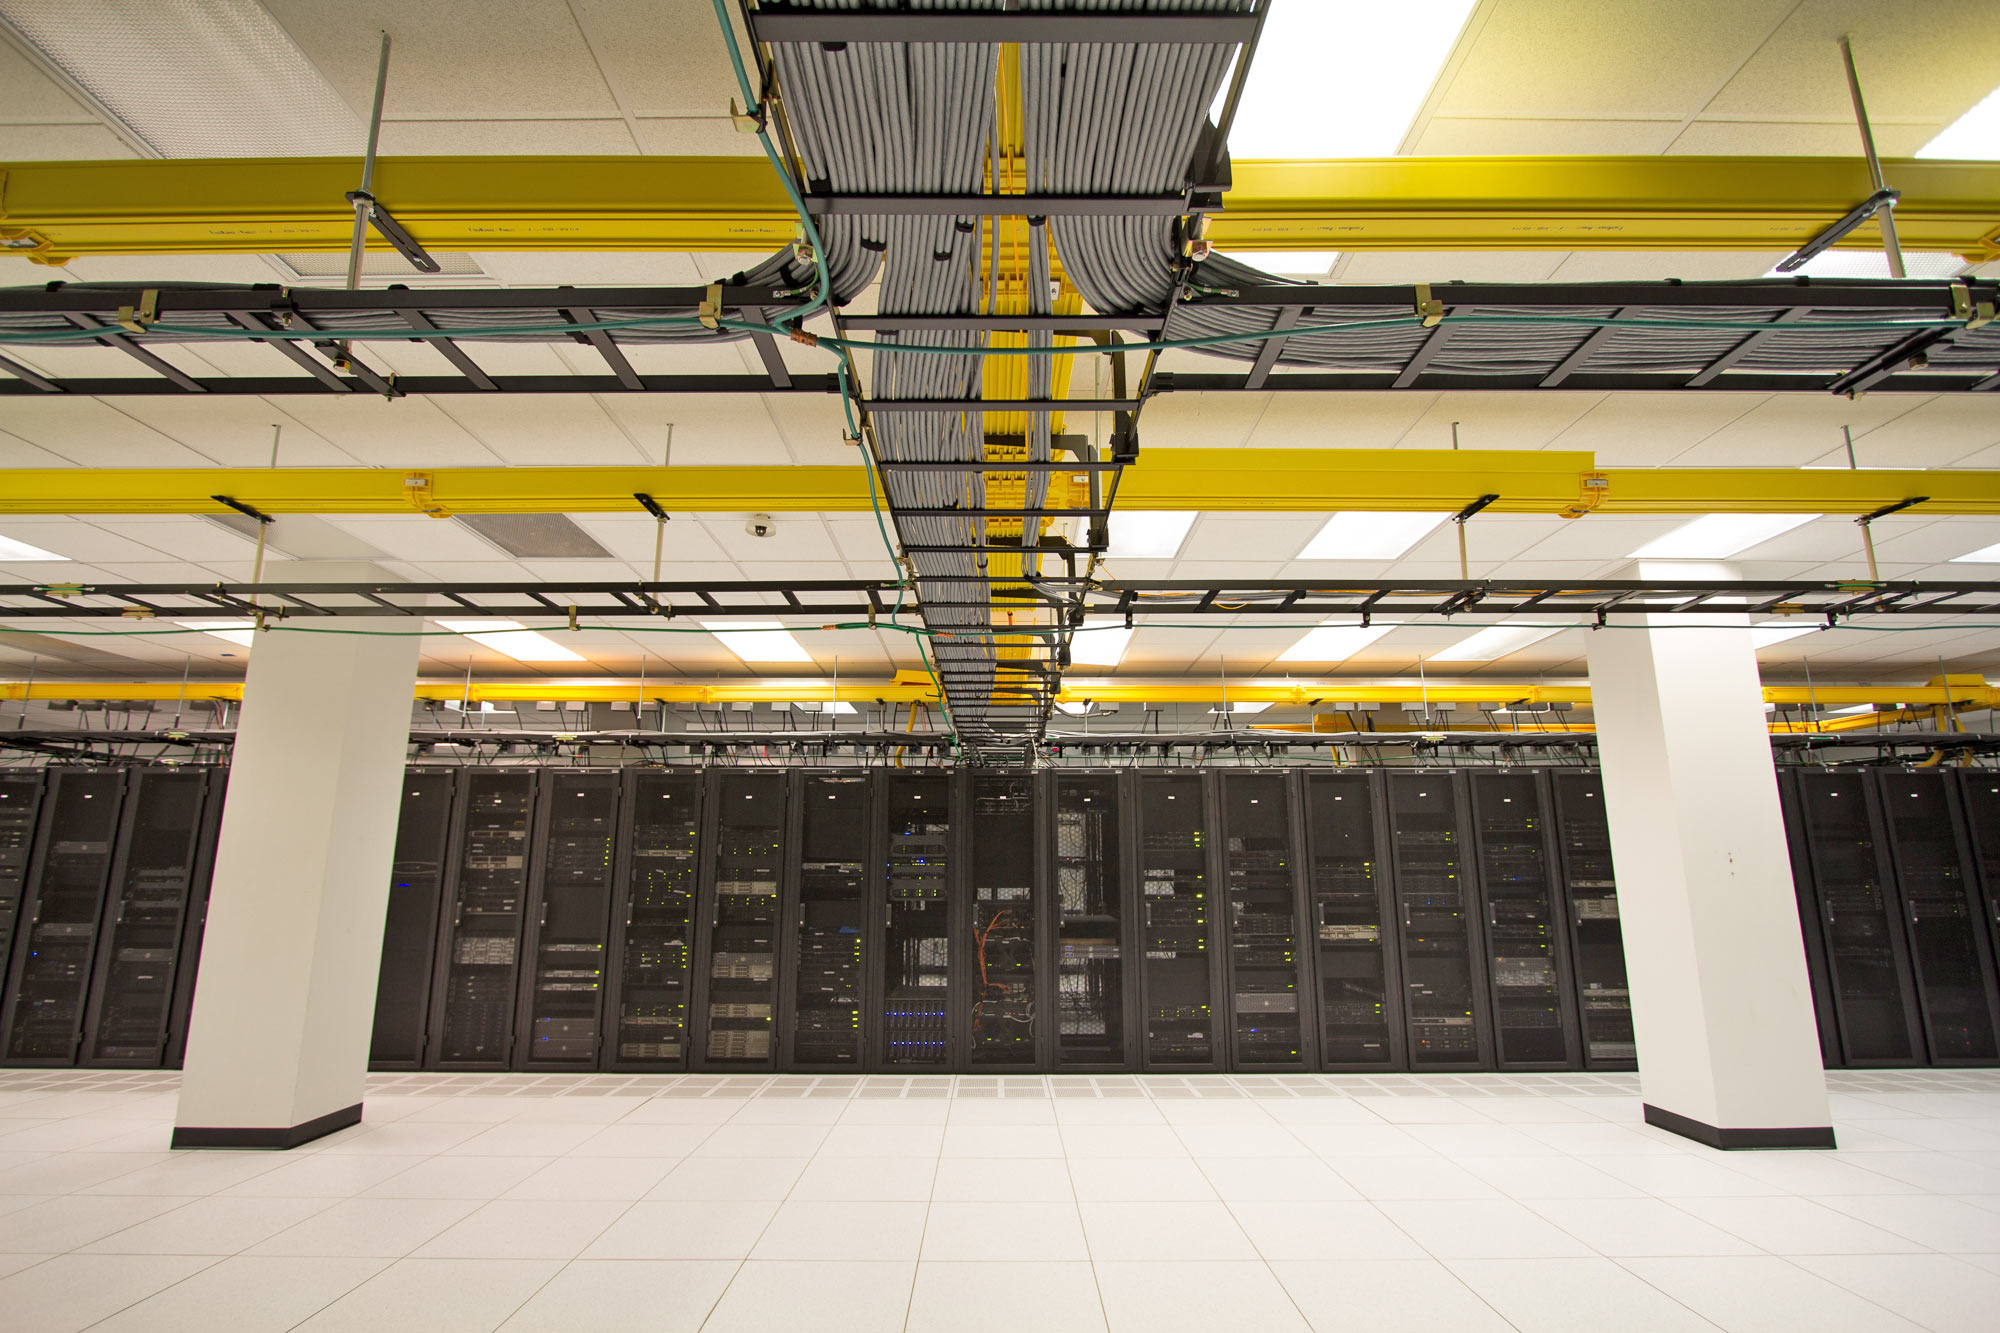 High-density areas of the facility allow for cabinets with up to 10kW.